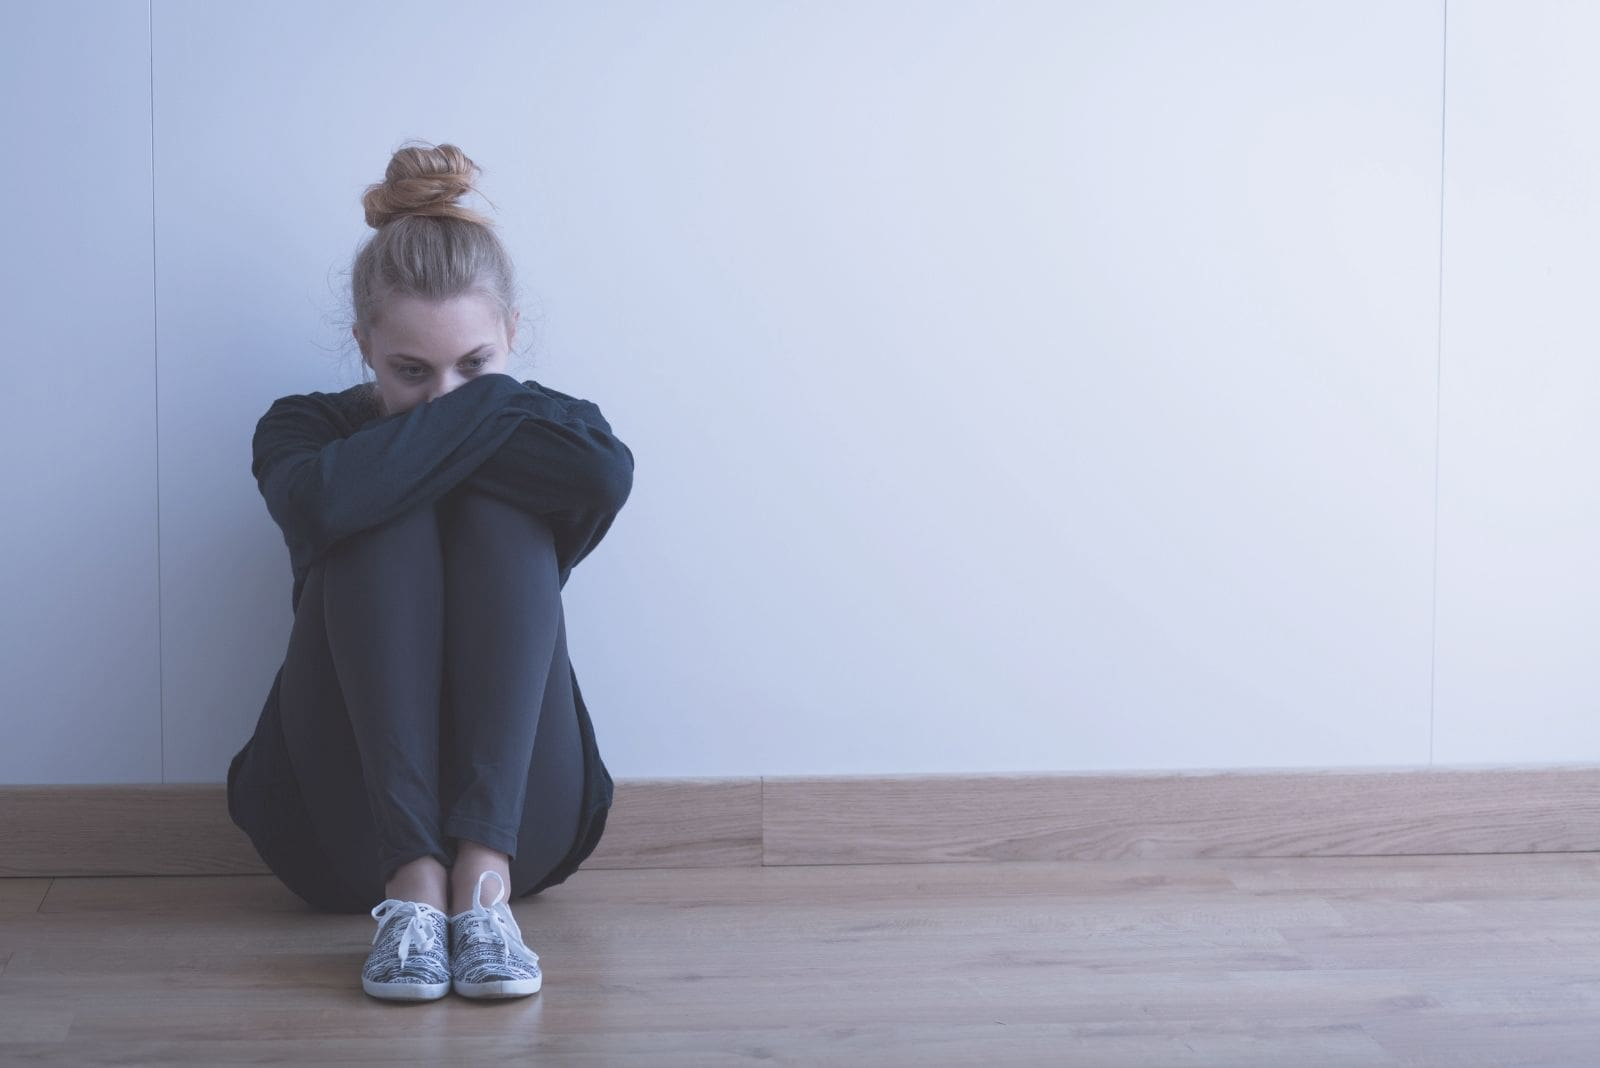 sad woman wearing black sweater and pants sitting on the floor inside an empty room